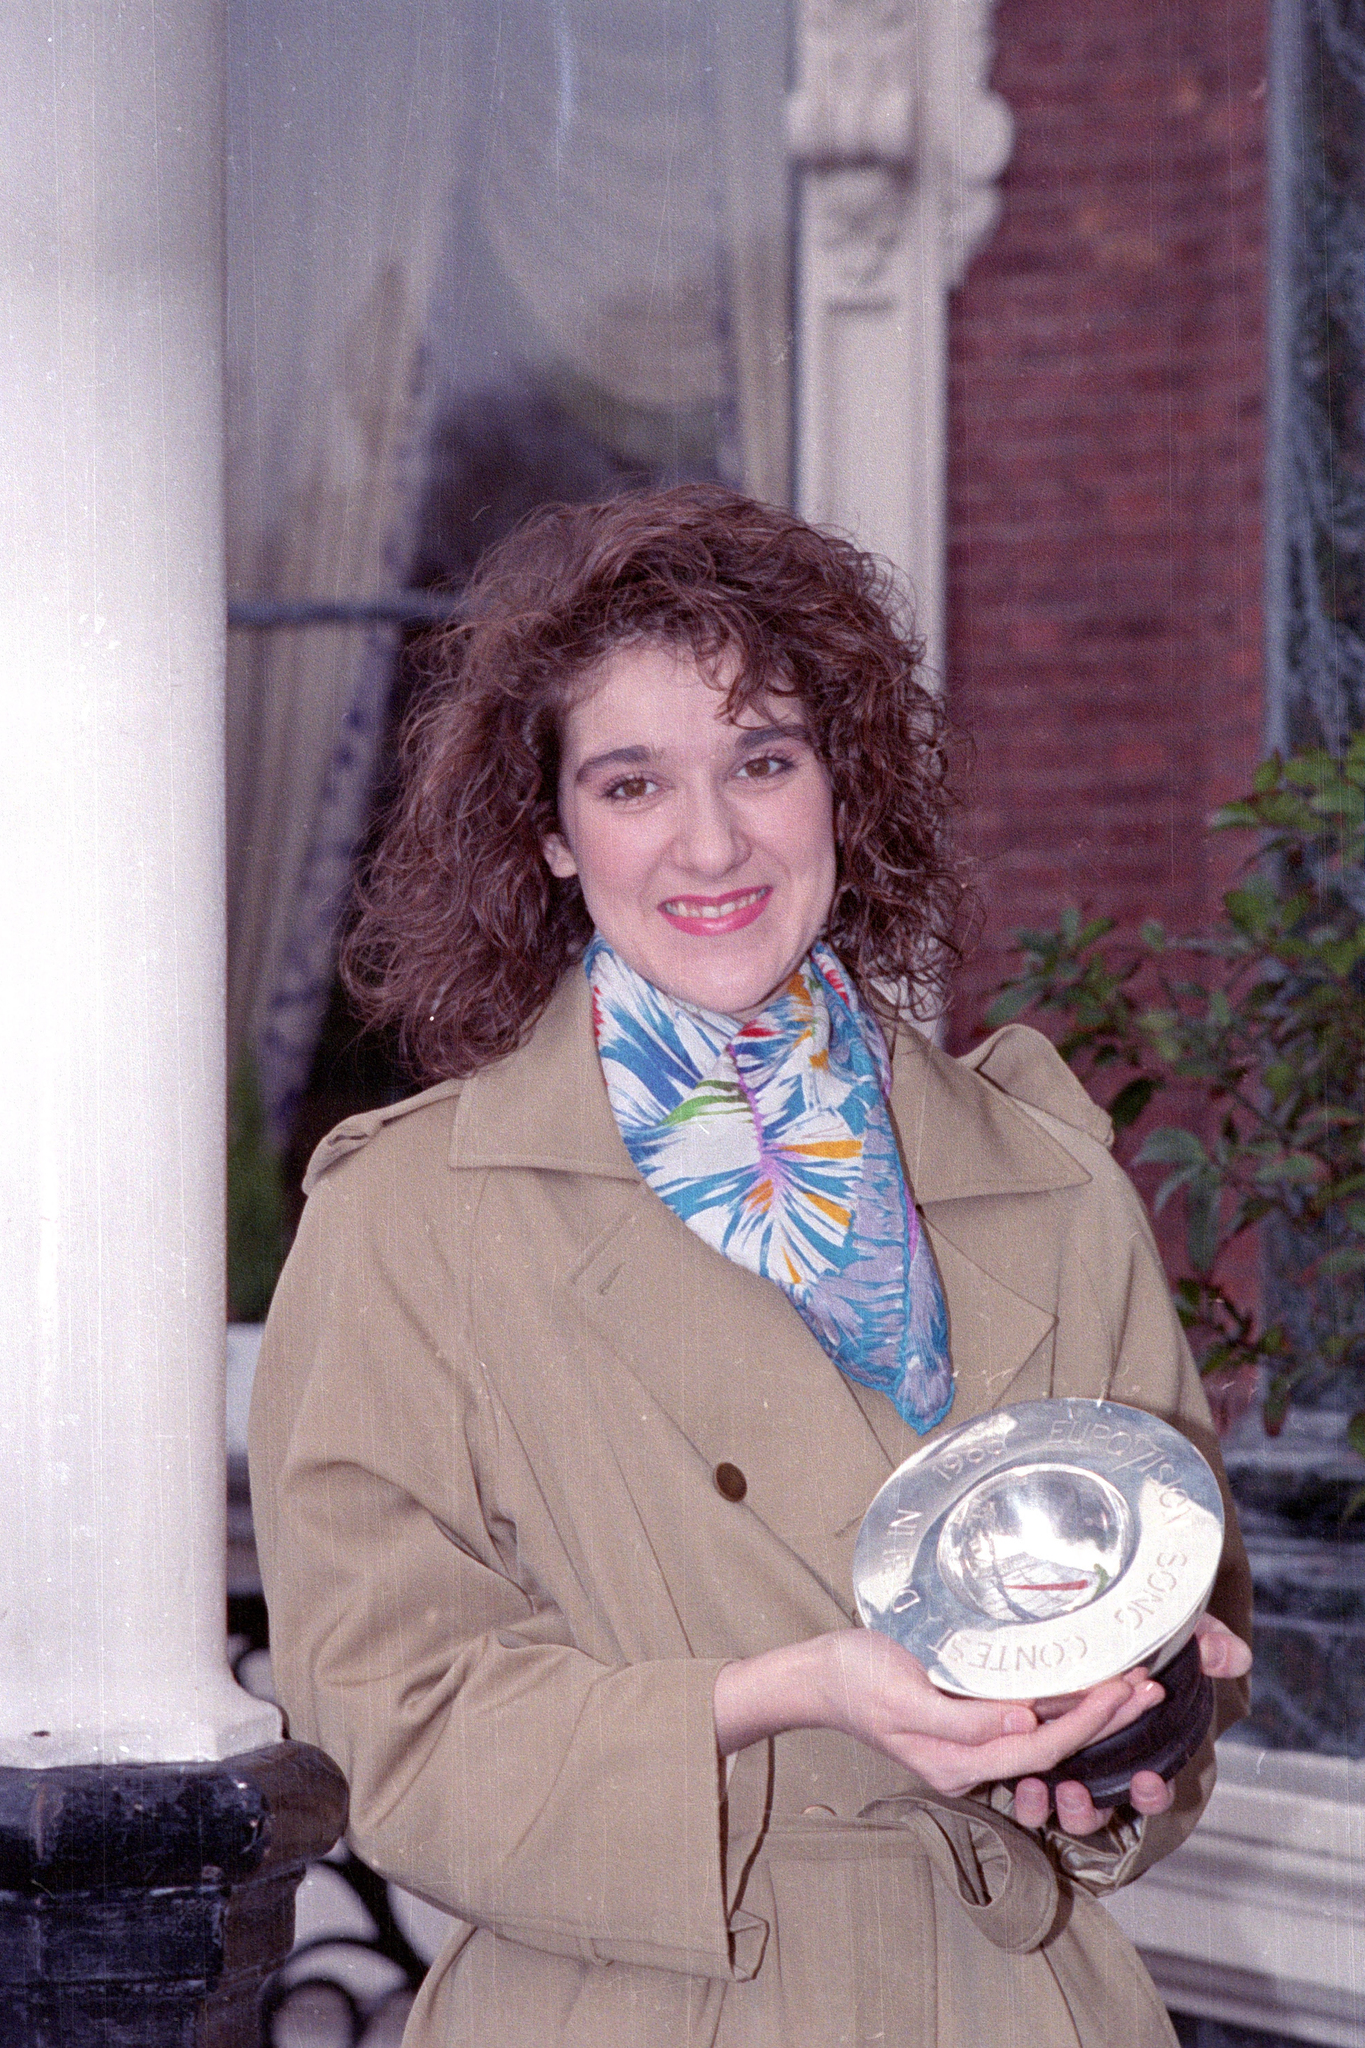 20-year-old Montreal native Celine Dion is showing her Eurovision Song Contest trophy in Dublin, Ireland, May 1, 1988.